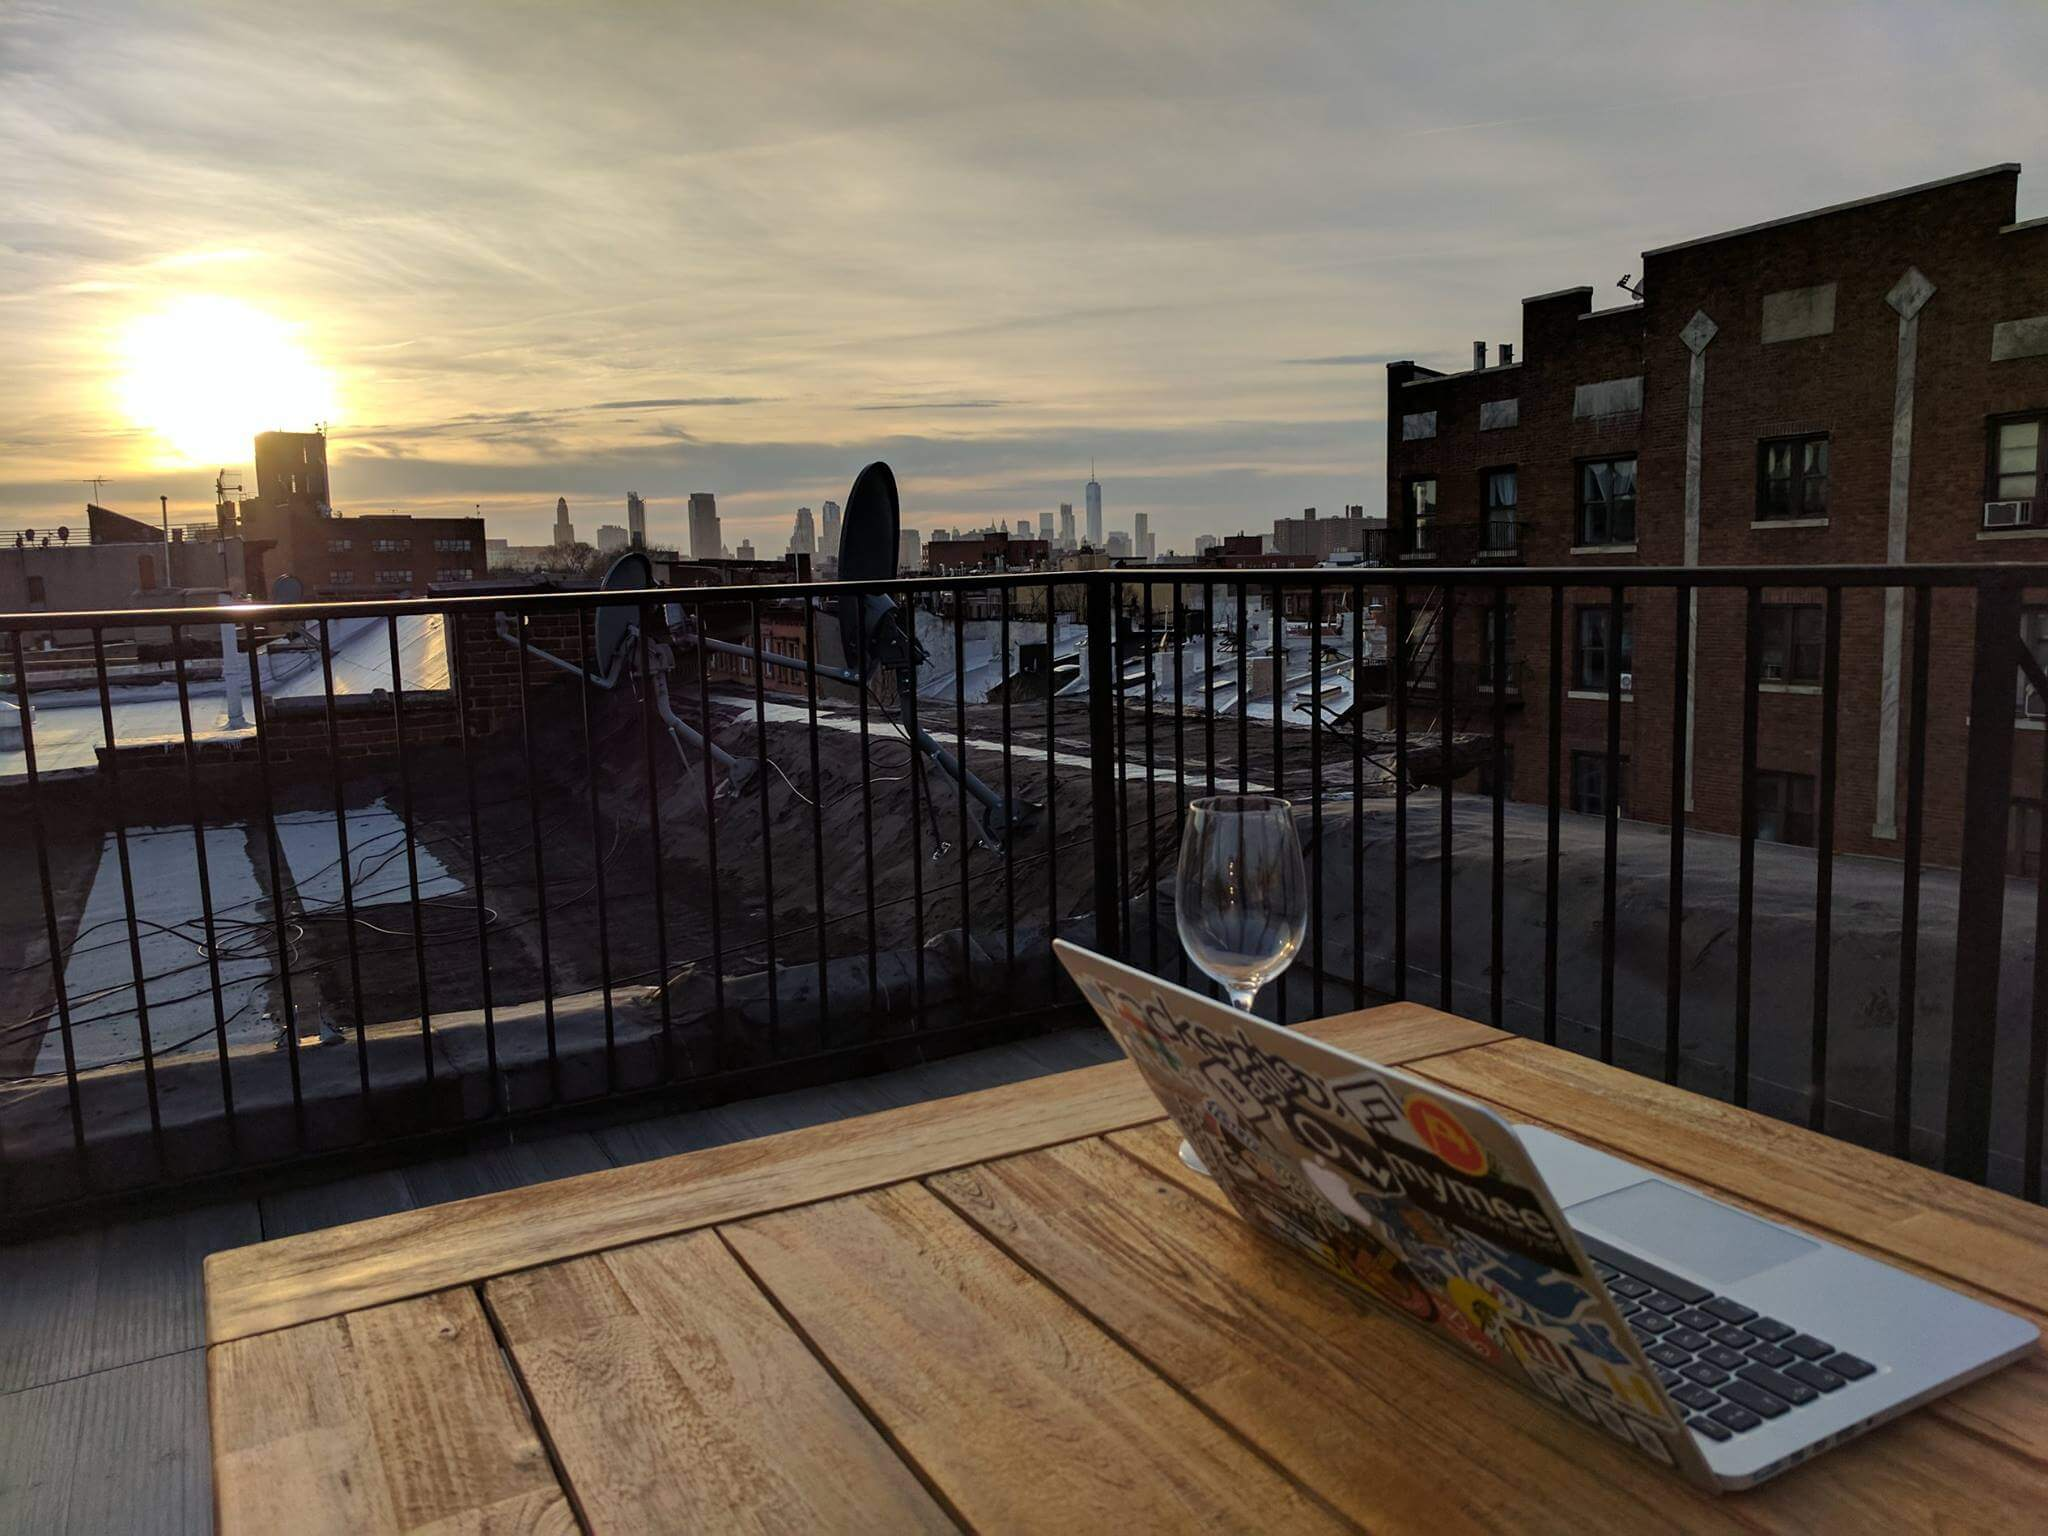 A member enjoys working from home on his private rooftop in Crown Heights, Brooklyn.